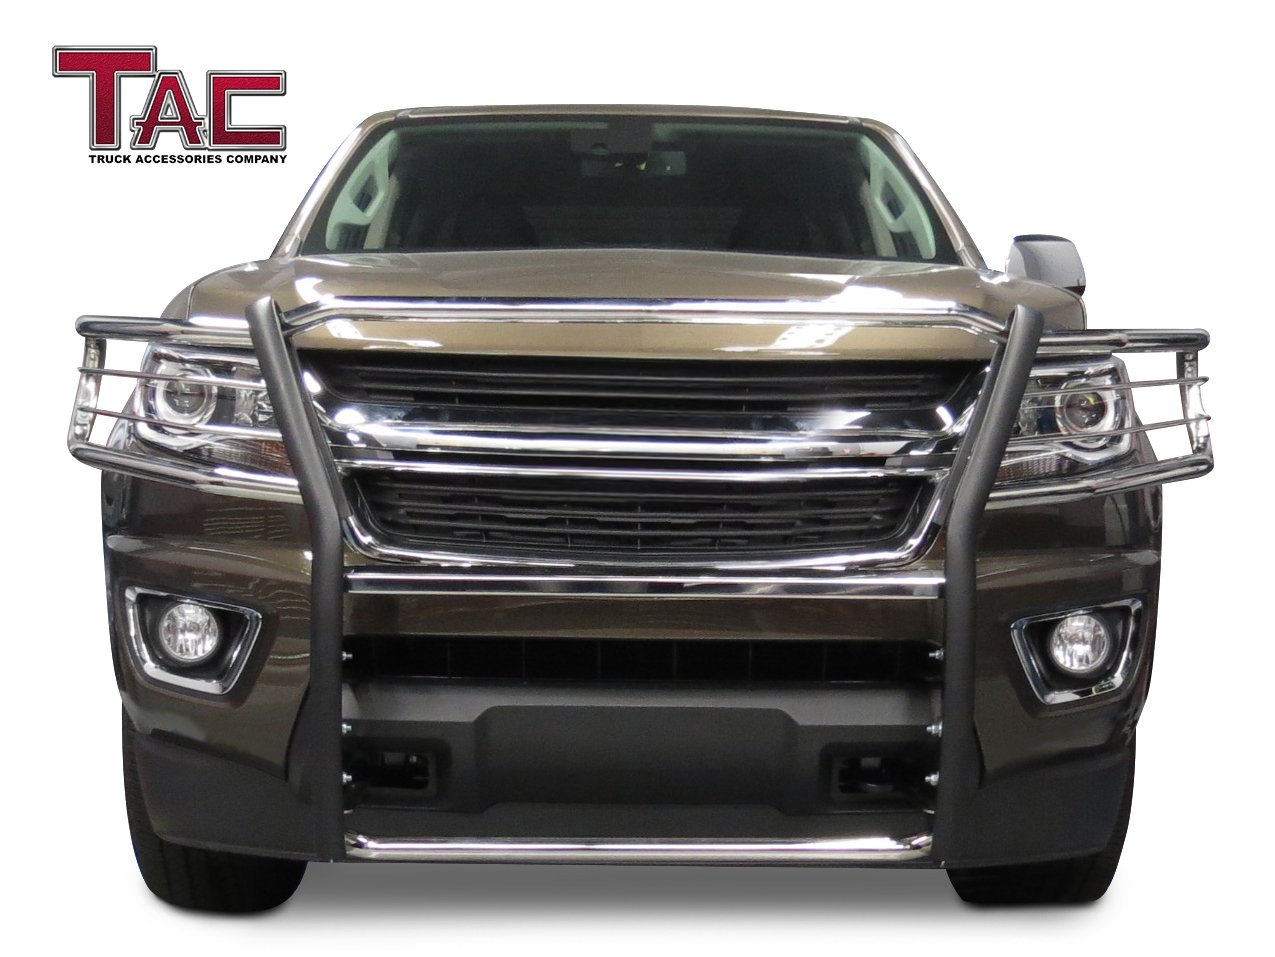 """// GMC Canyon Pickup Truck 3/"""" Stainless Steel Front Bumper Guard Grille Guard Brush Push Guard Off Road Exterior Accessories TAC Bull Bar Fit 2015-2019 Chevy Colorado Excluded ZR2 Model"""